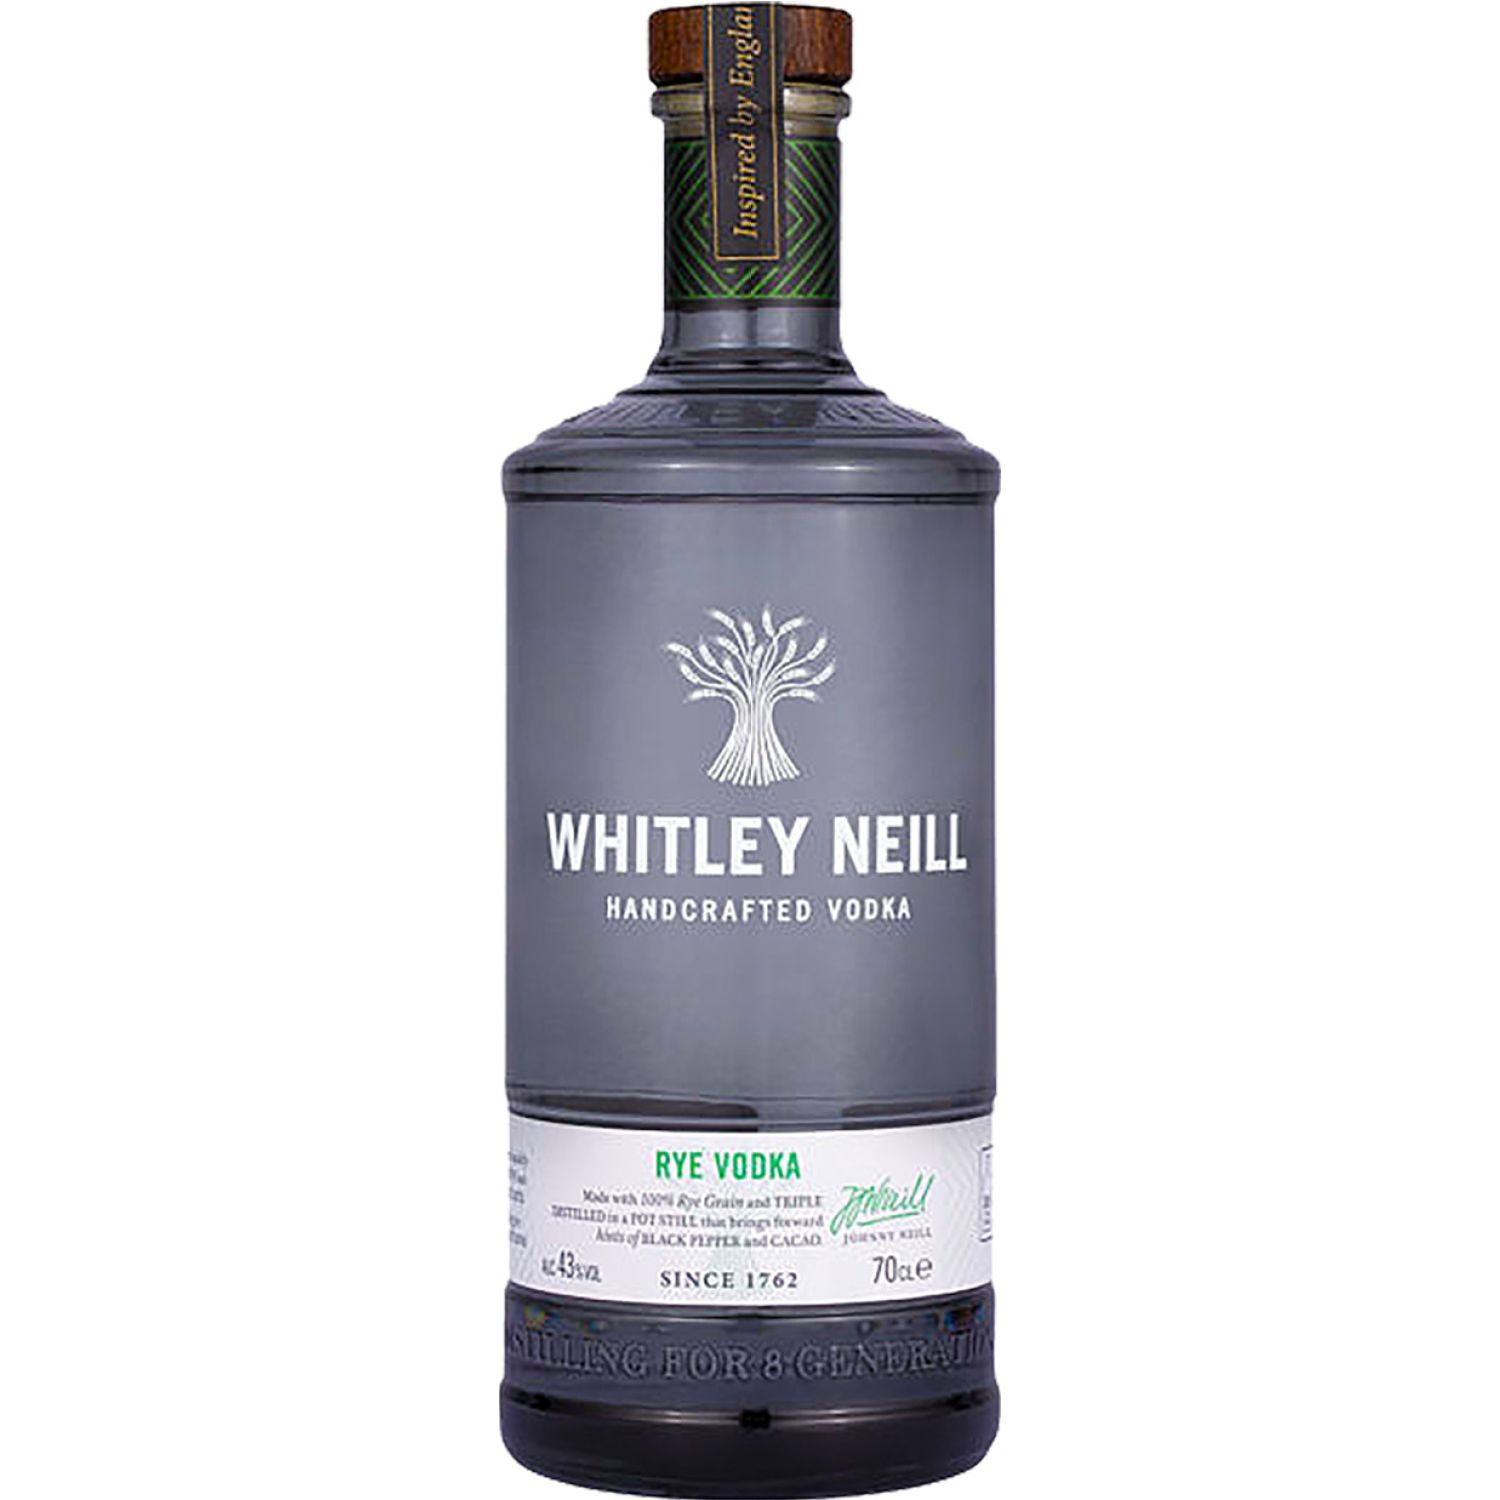 Whitley Neill Whitley Neill Rye Vodka 700ML SIN COLOR Vodka